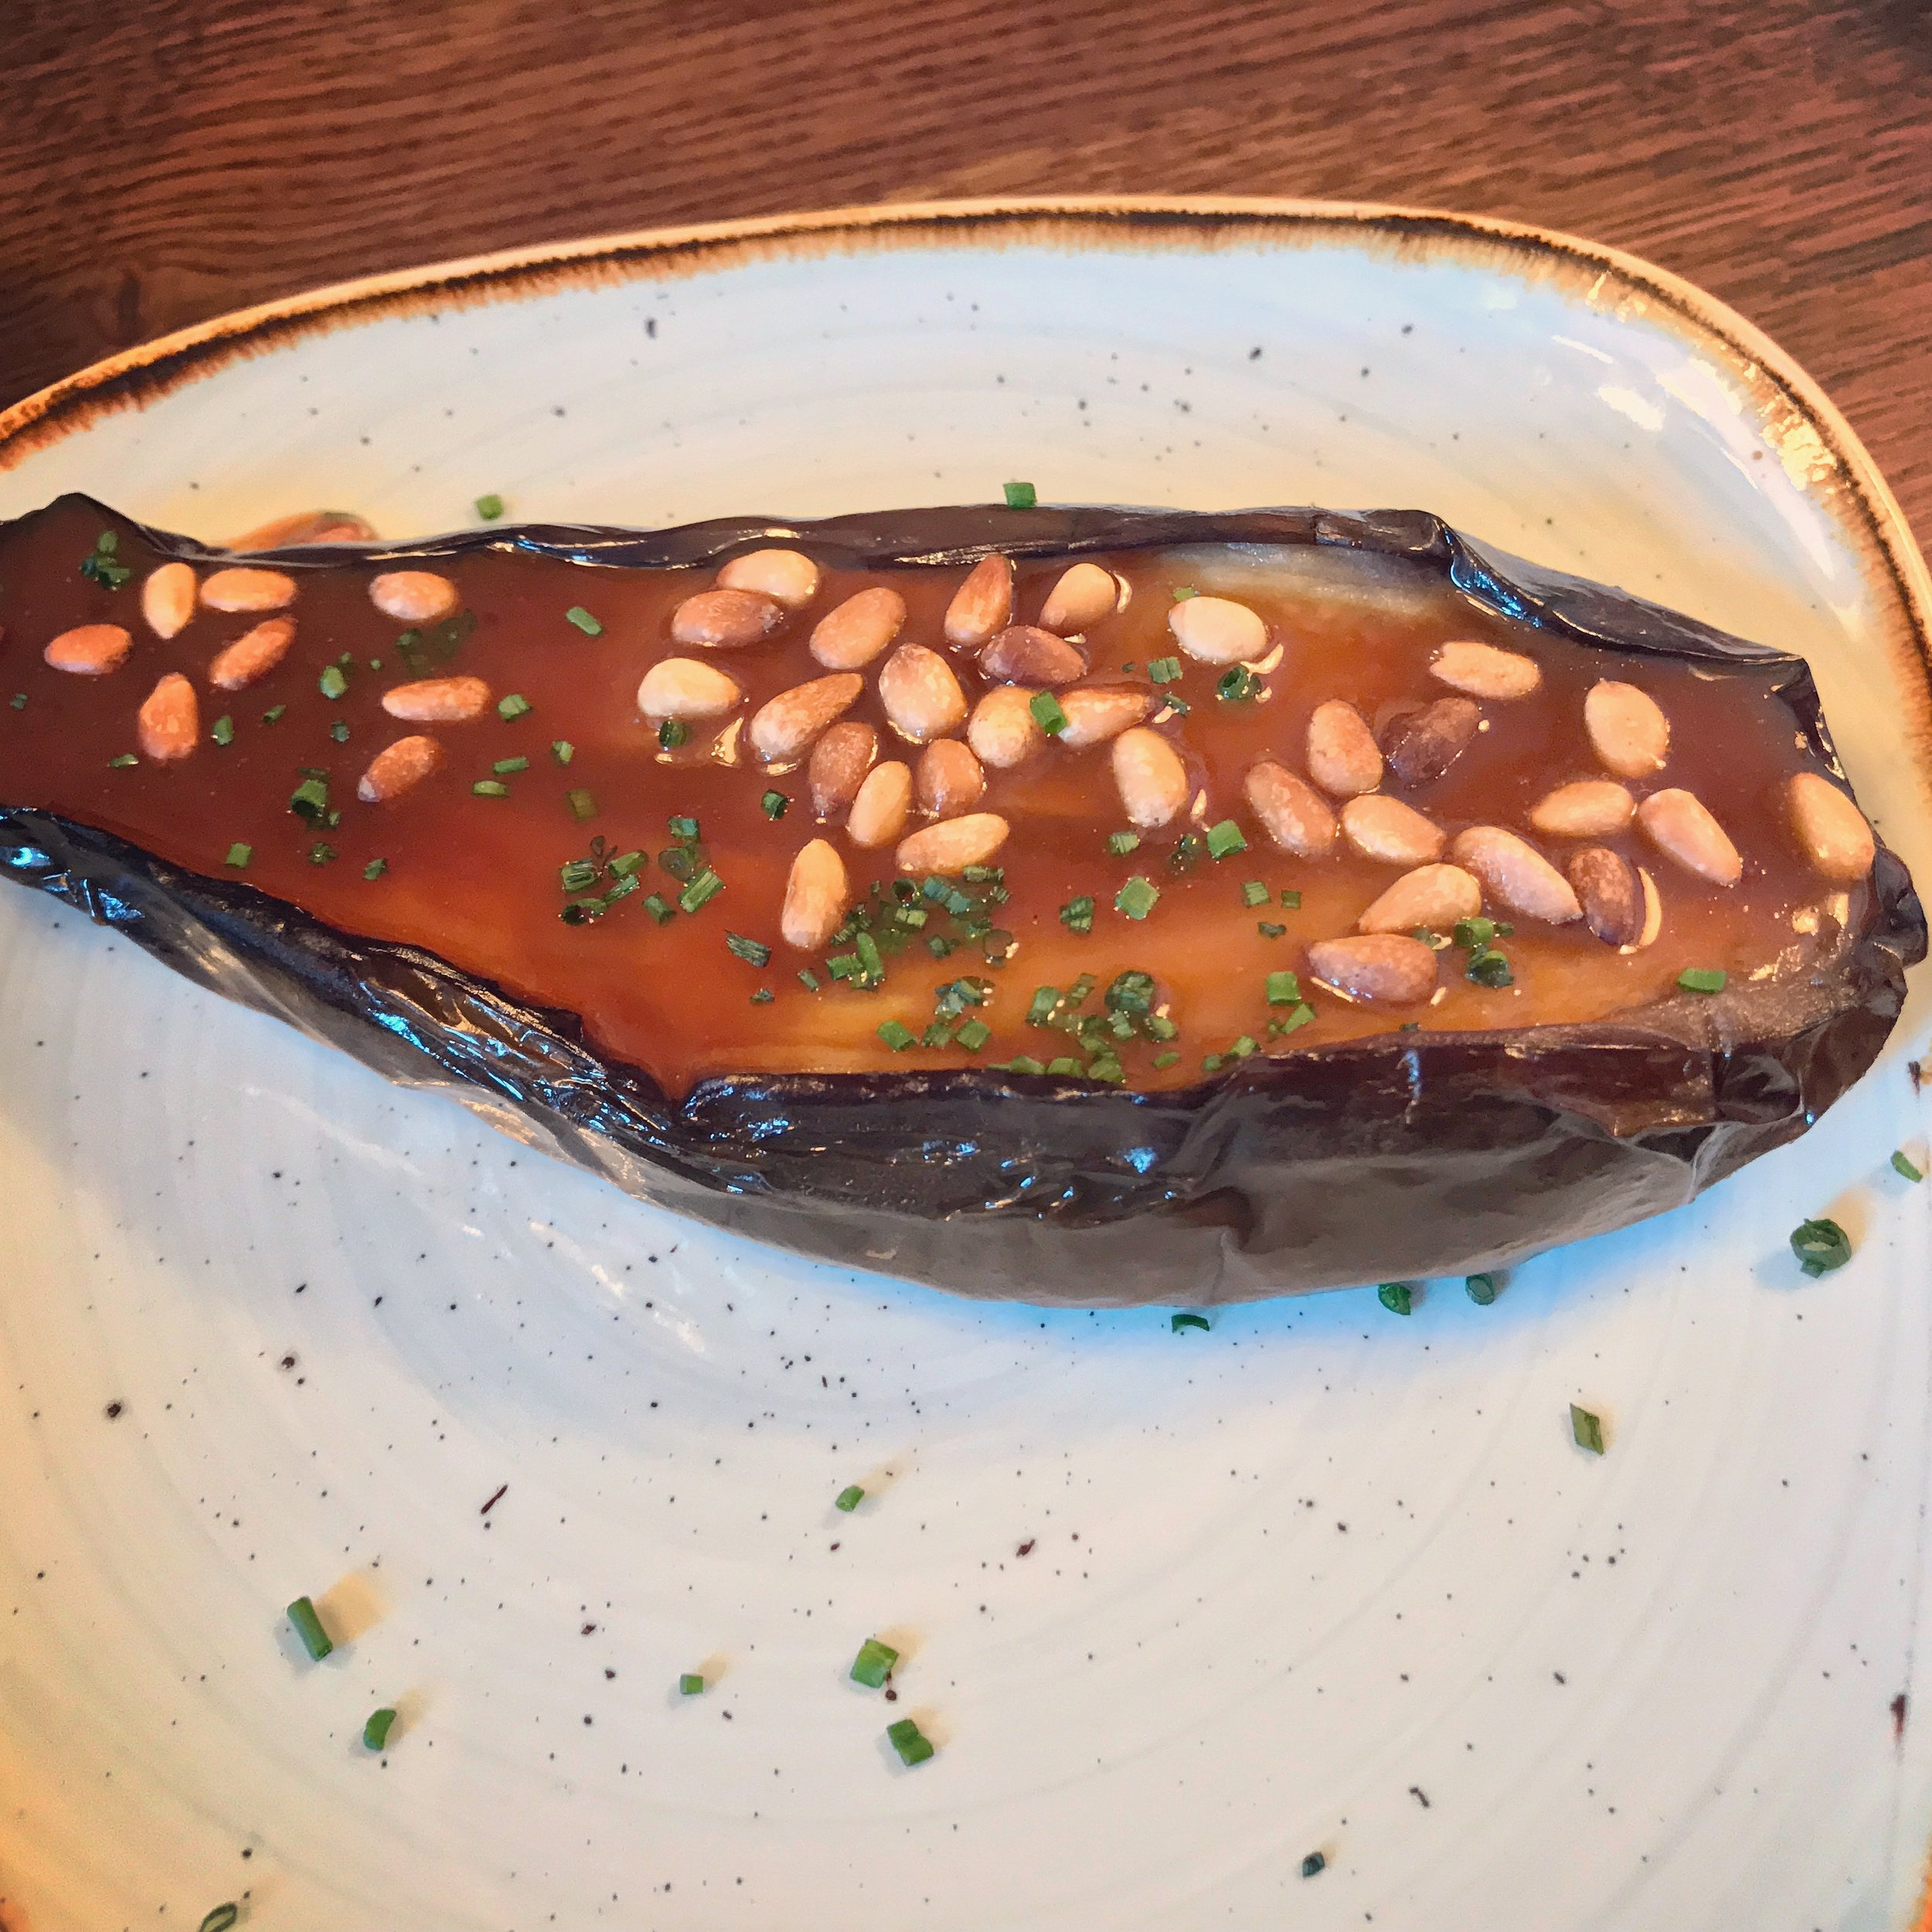 Aubergine confit-style with honey and pine nuts